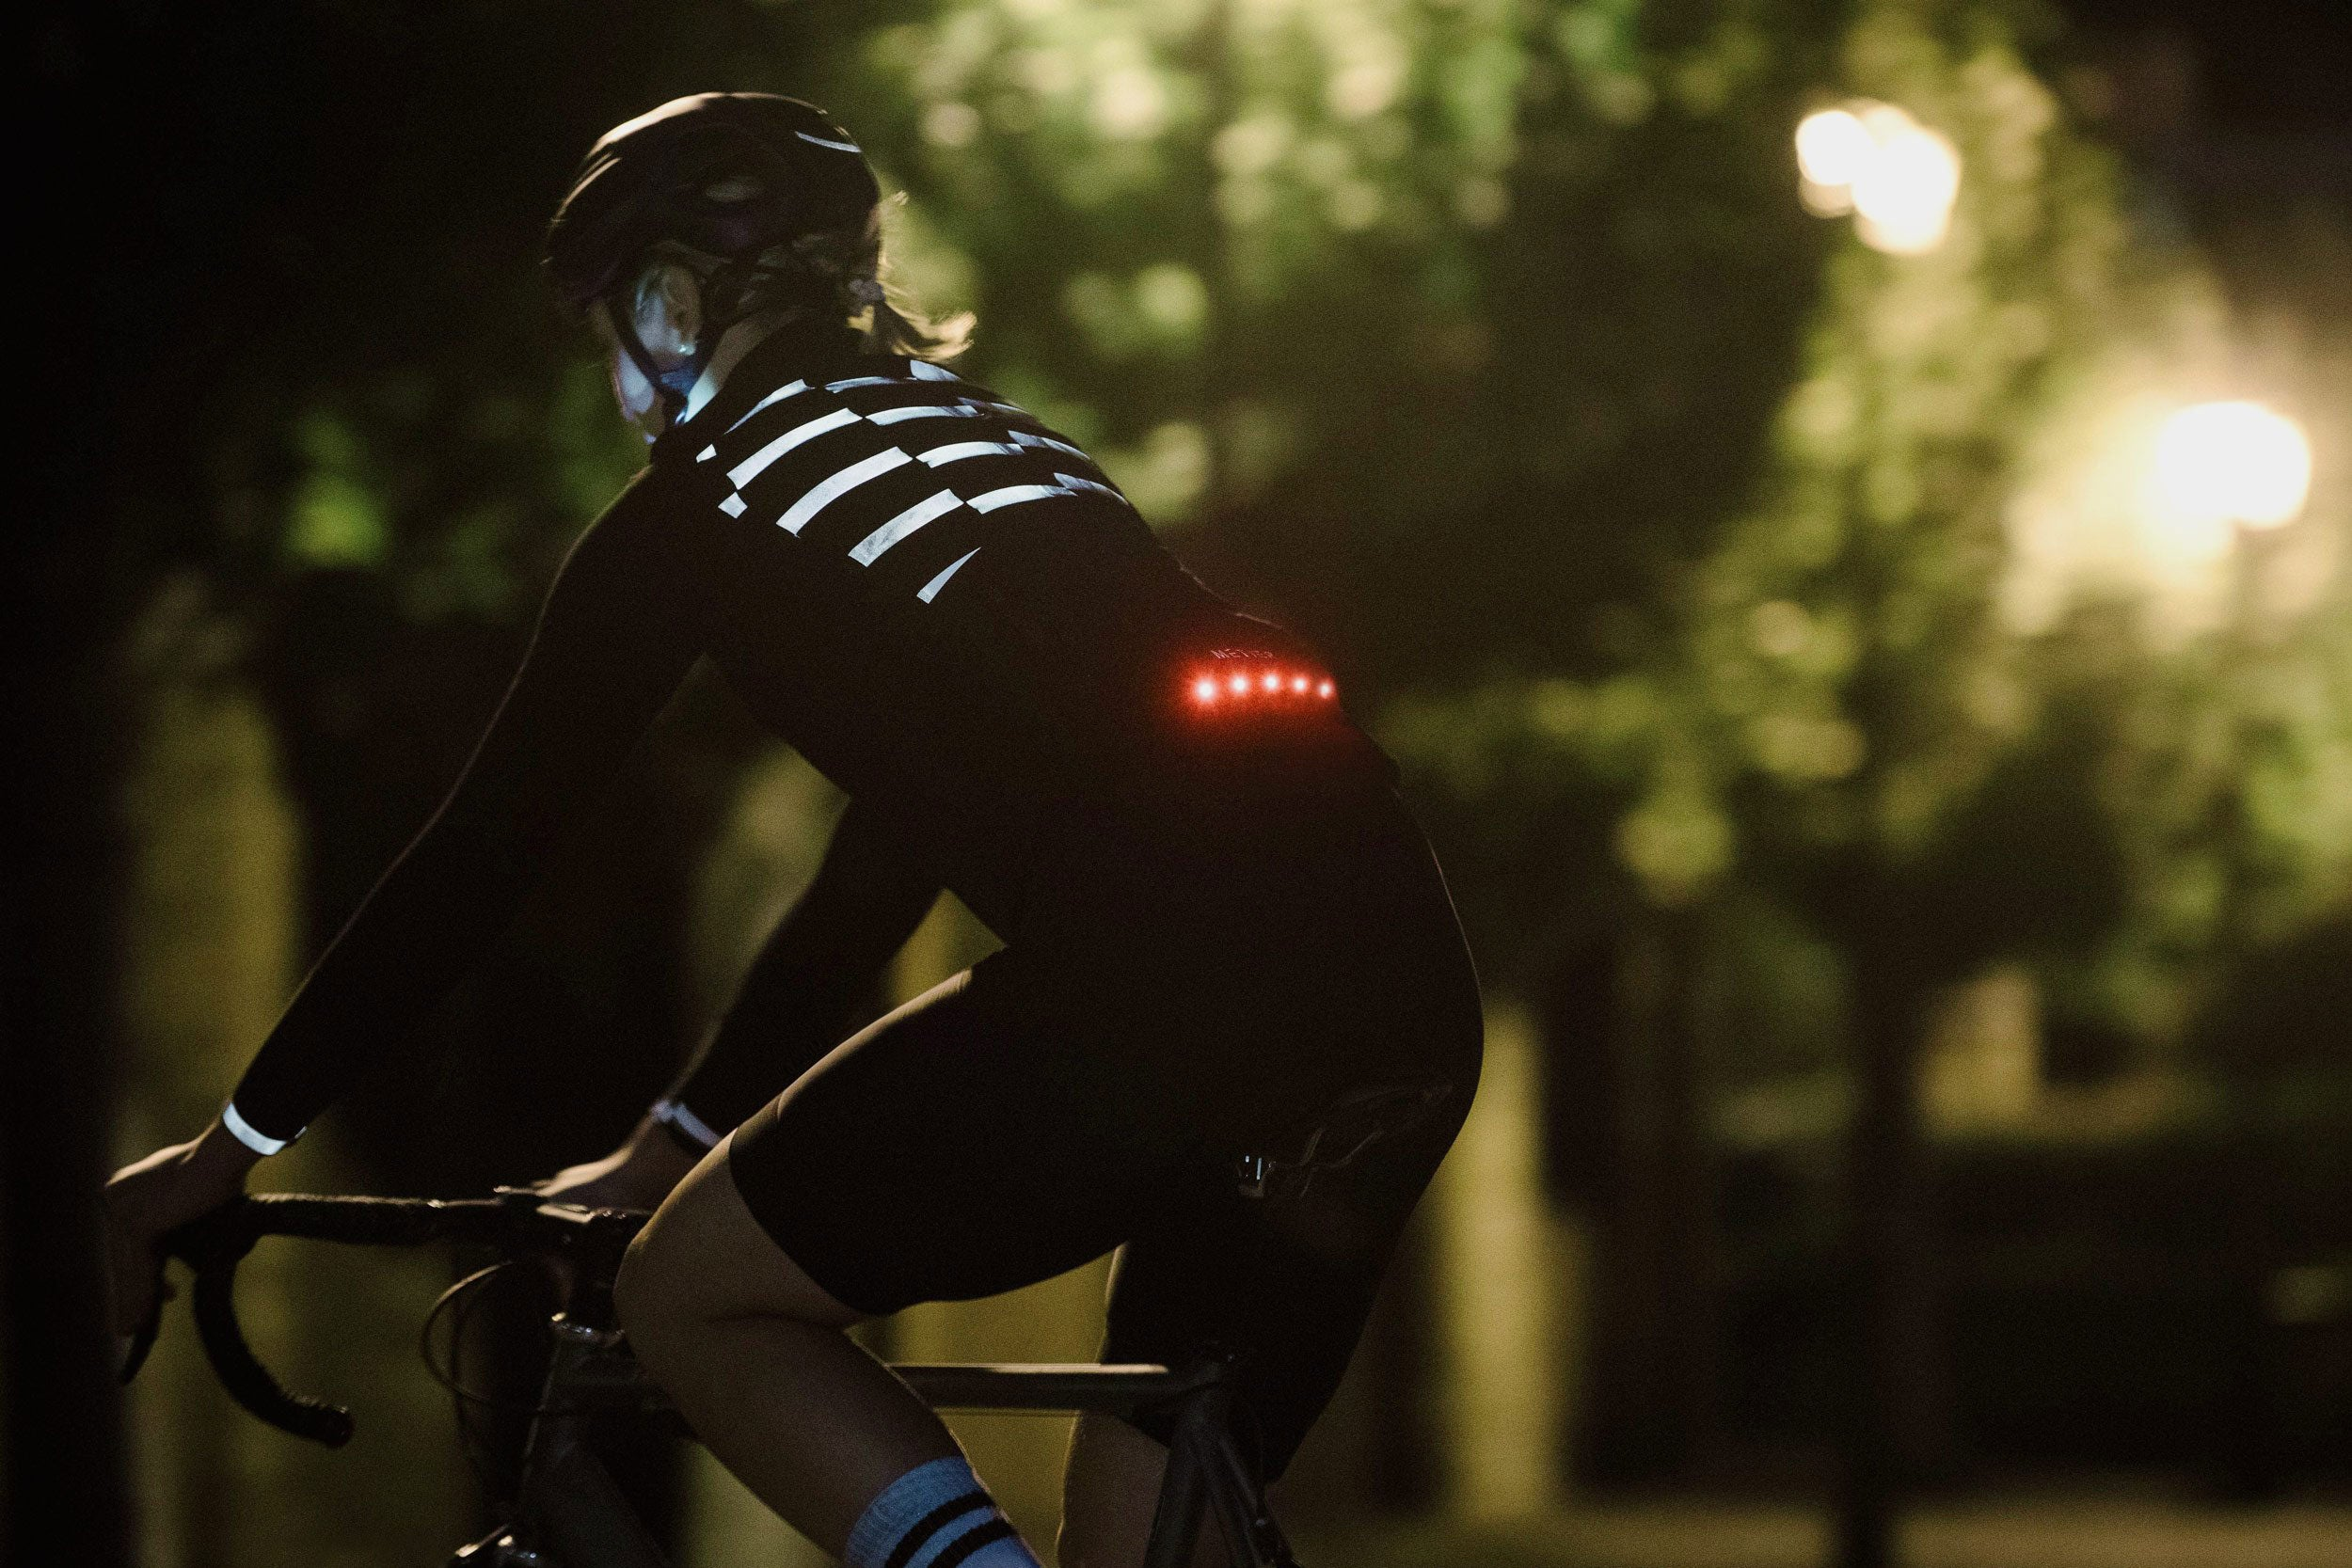 Our BrightRide lighting system is seamlessly bonded into the front and rear of the garments. UHI (Ultra High Intensity) and UHB (Ultra High Brightness) LEDs deliver fantastic personal visibility, allowing you to ride all day and through the night. Taking advantage of BioMotion (the human ability to perceive form and movement from a few small stimuli), you become recognisably human and instantly more visible.